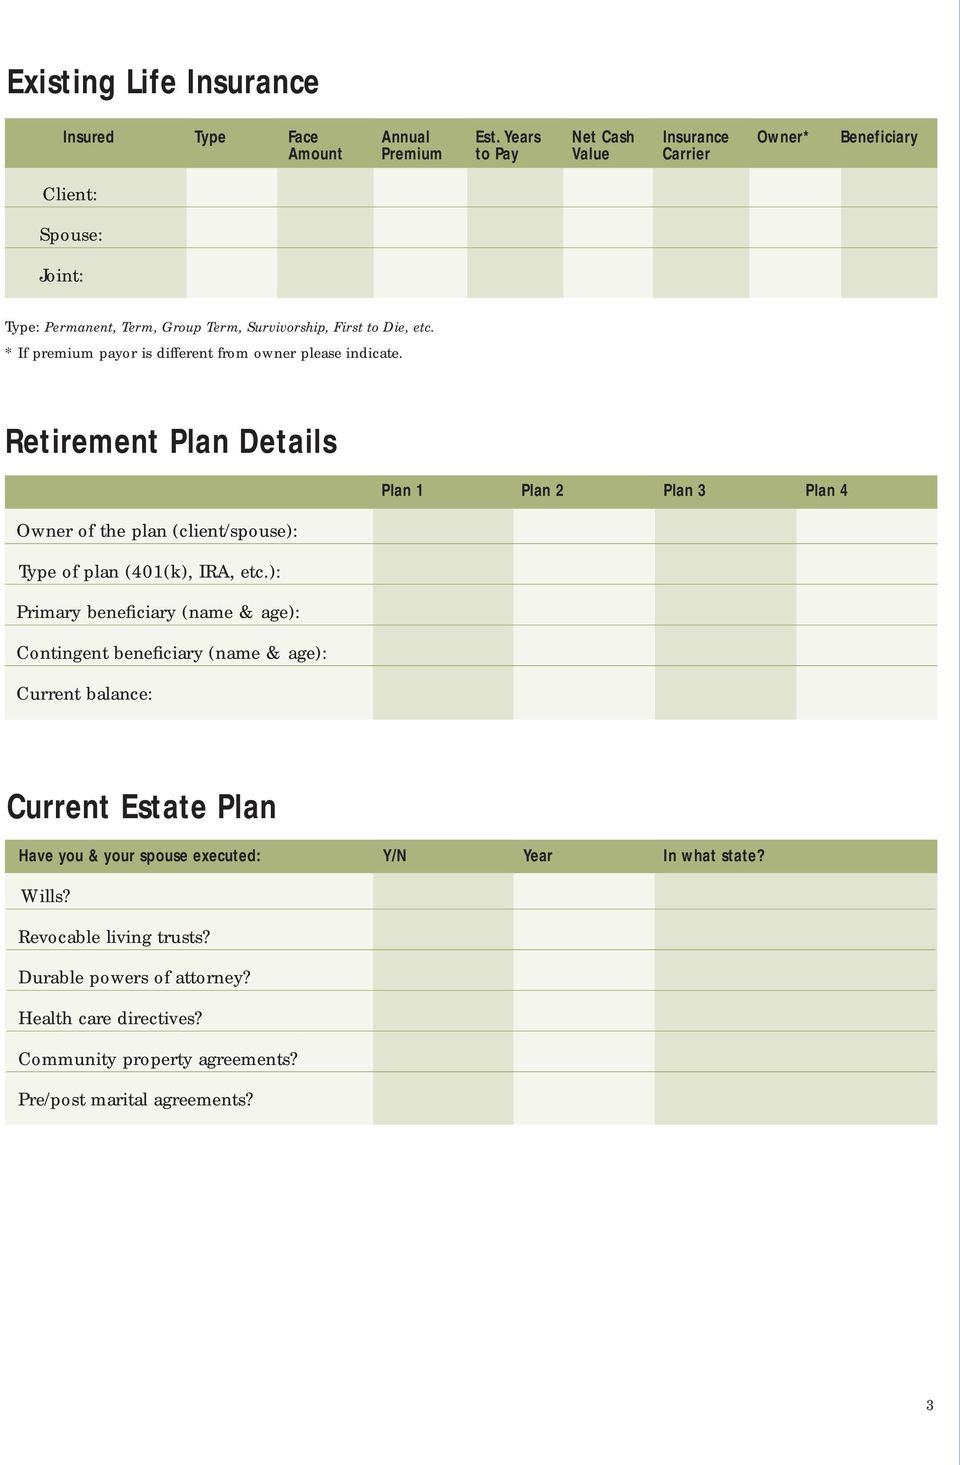 * If premium payor is different from owner please indicate. Retirement Plan Details Plan 1 Plan 2 Plan 3 Plan 4 Owner of the plan (client/spouse): Type of plan (401(k), IRA, etc.